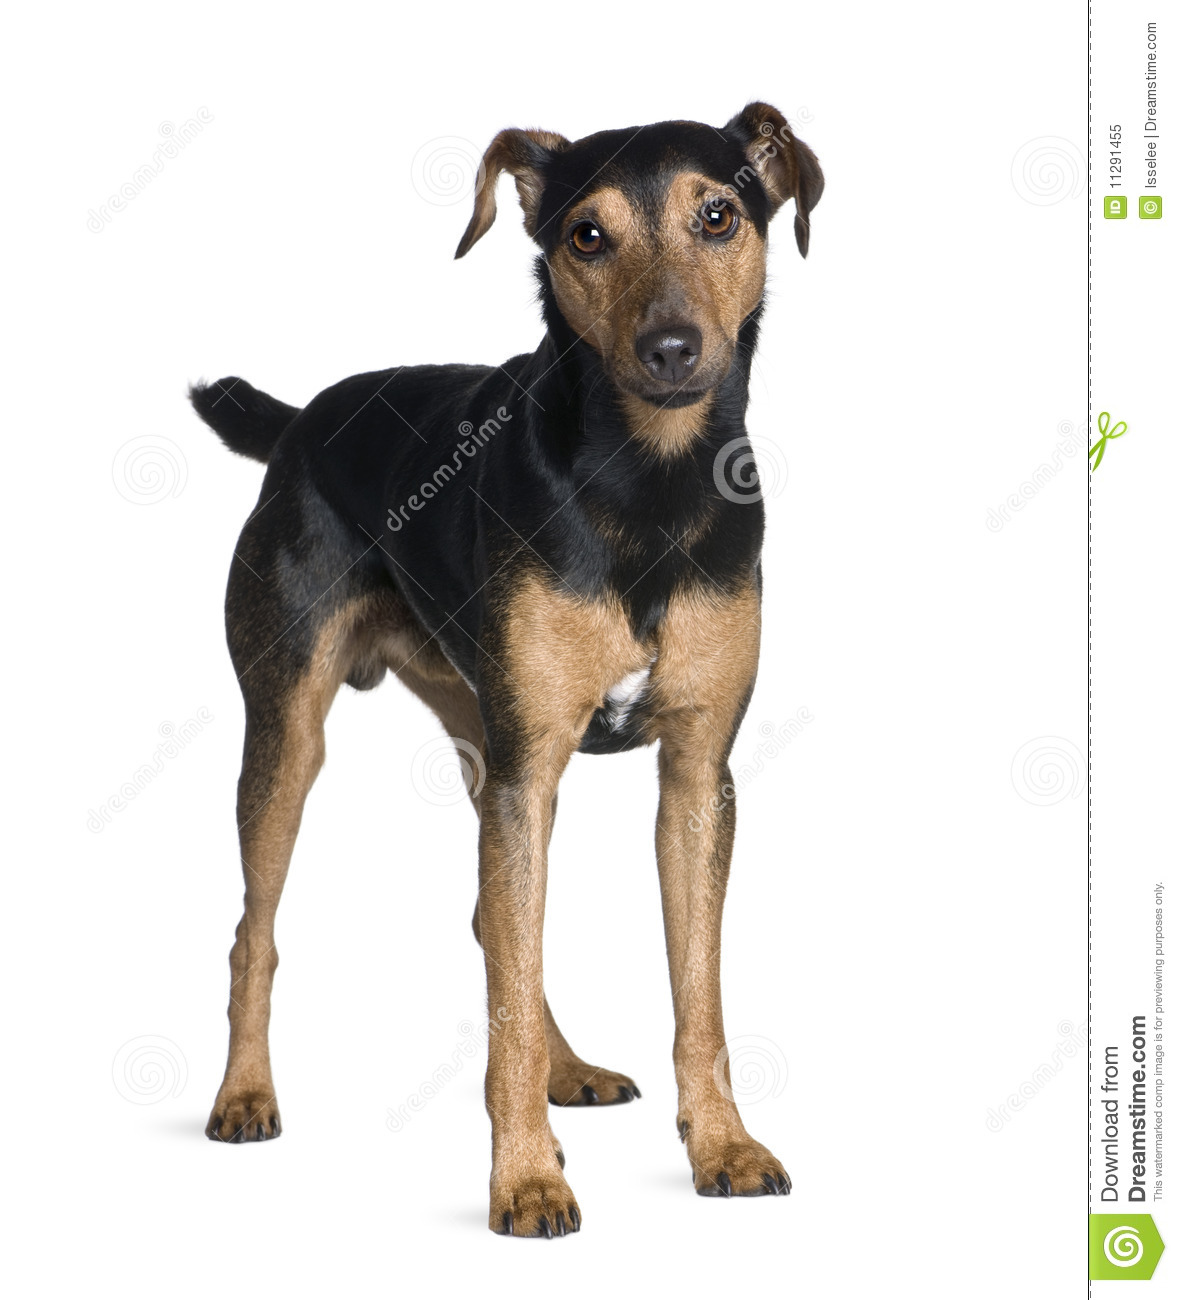 Manchester terrier 3 years old standing in front of white background